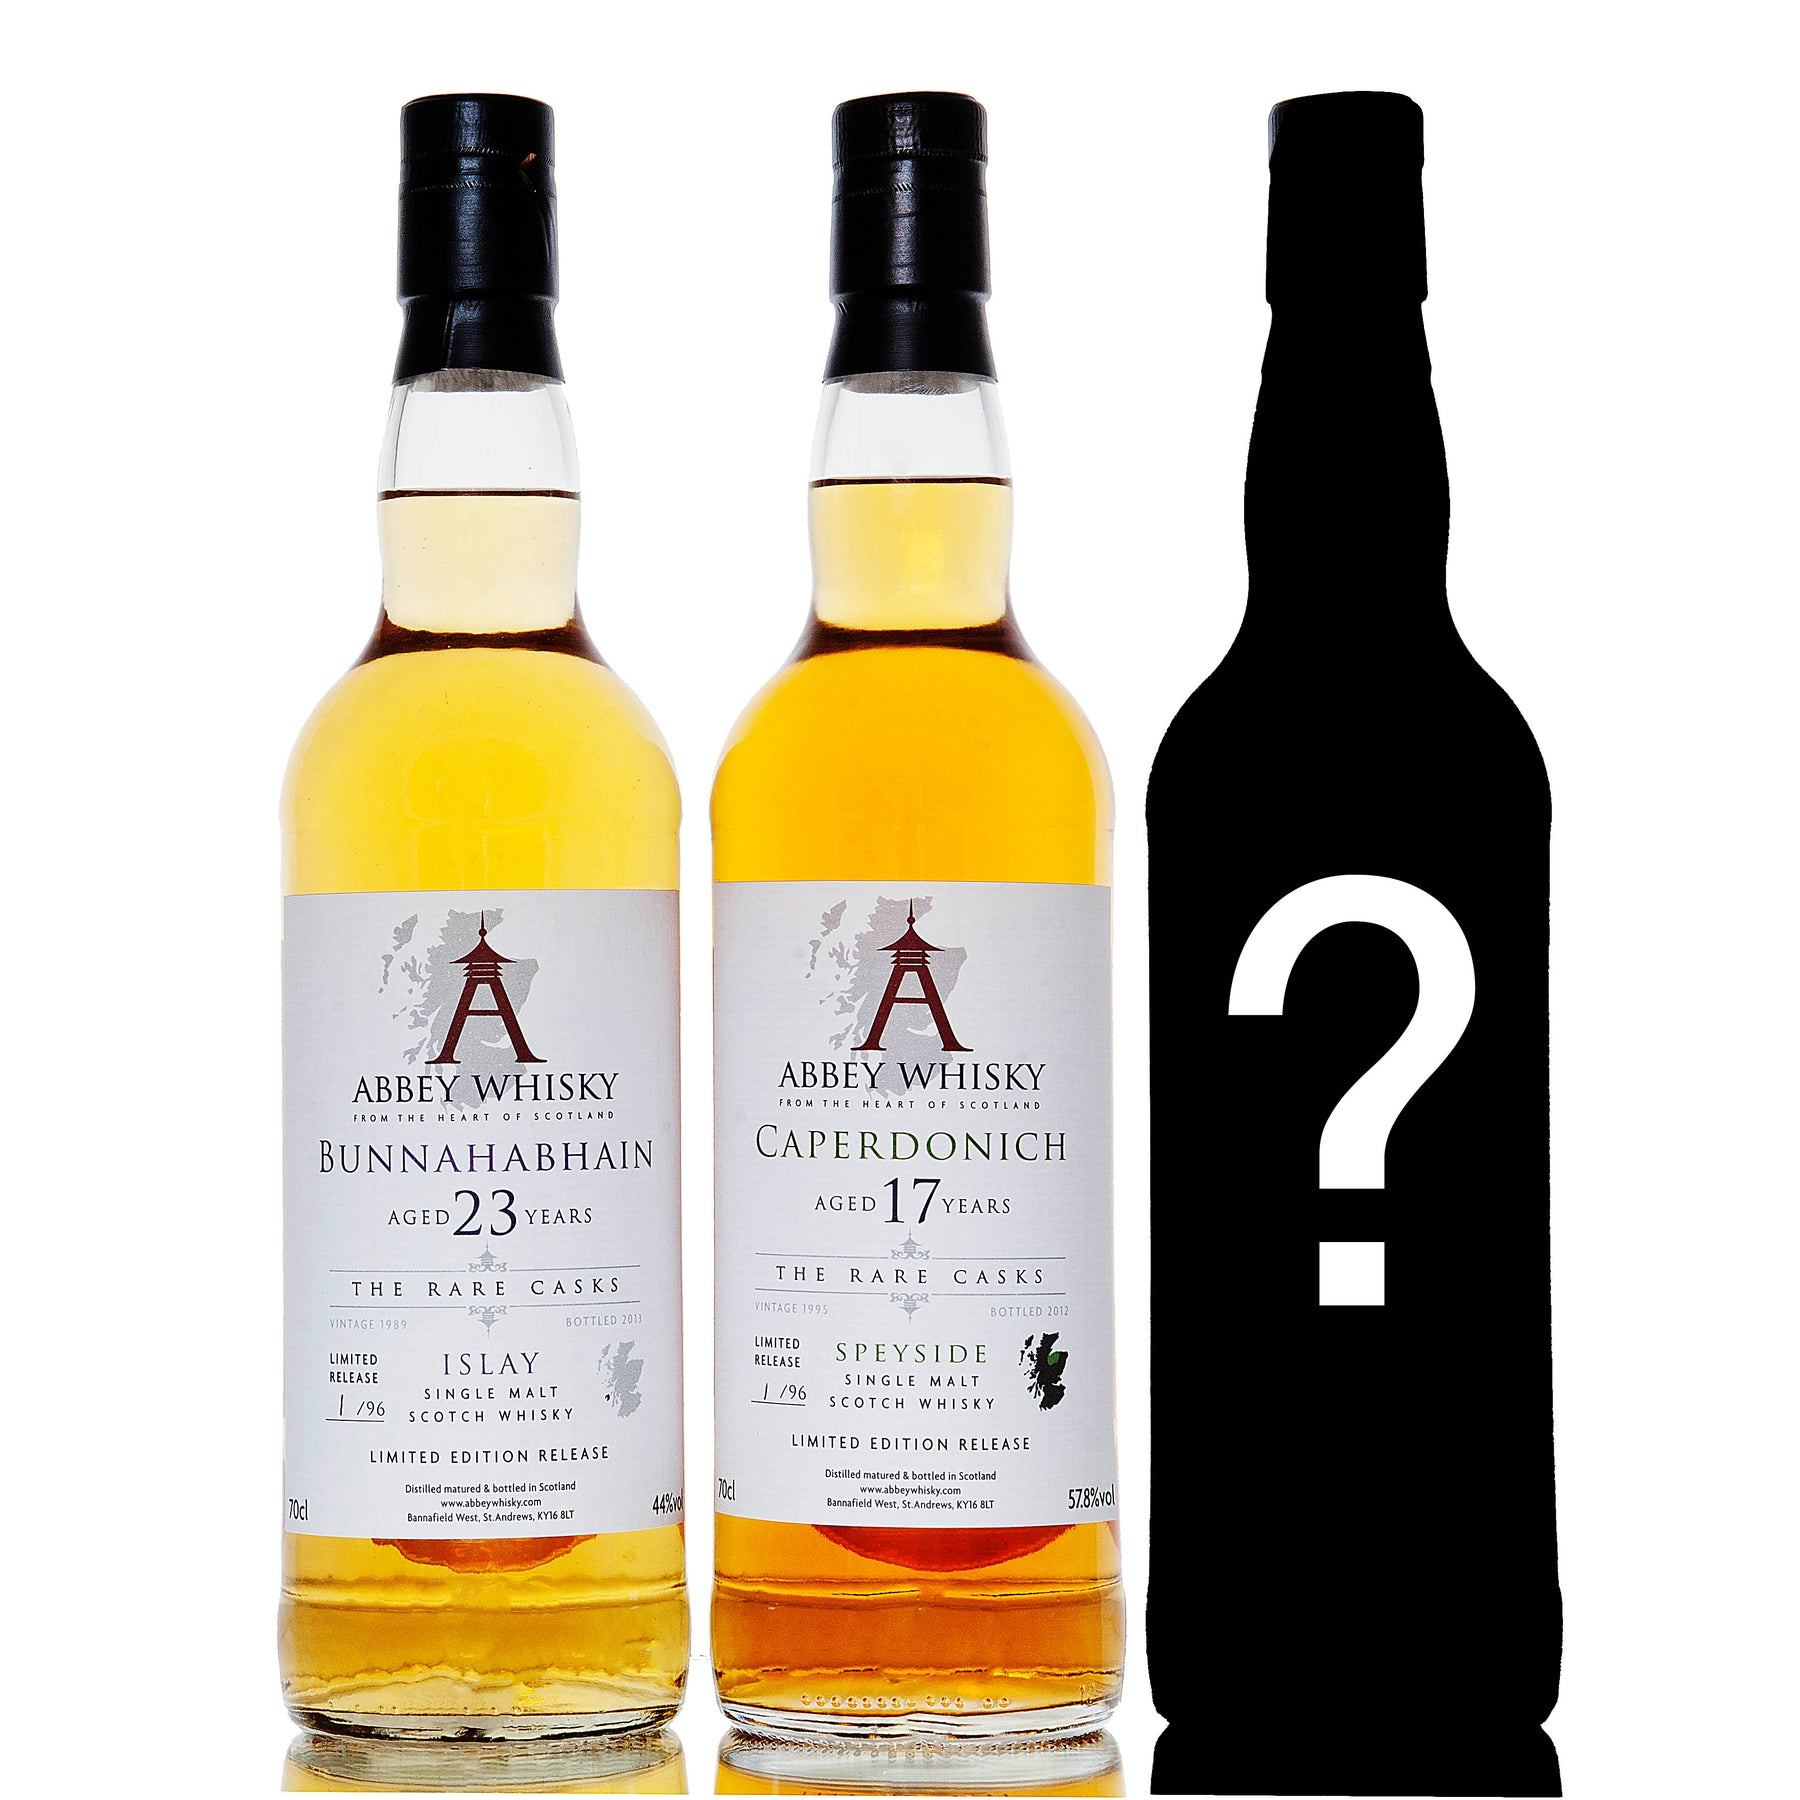 Win a bottle of 'Rare Casks' whisky - Release 3 (not even released yet!)